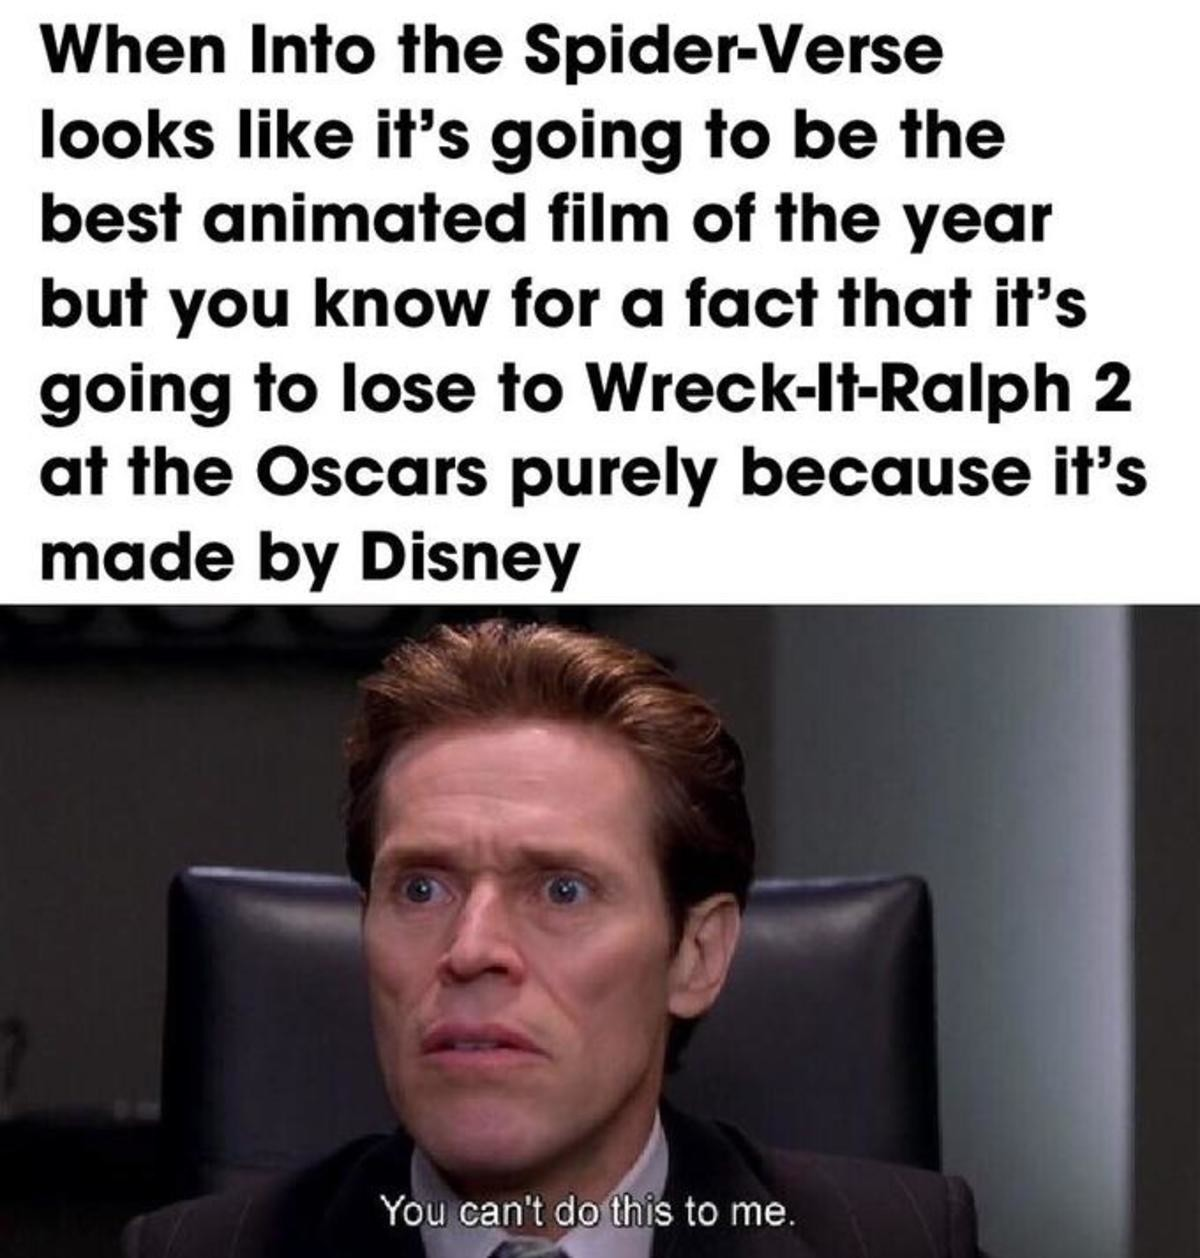 Disney. join list: Edderkoppen (53 subs)Mention Clicks: 836Msgs Sent: 2139Mention History.. spiderverse gave me epilepsy but it was worth it, saw it twice